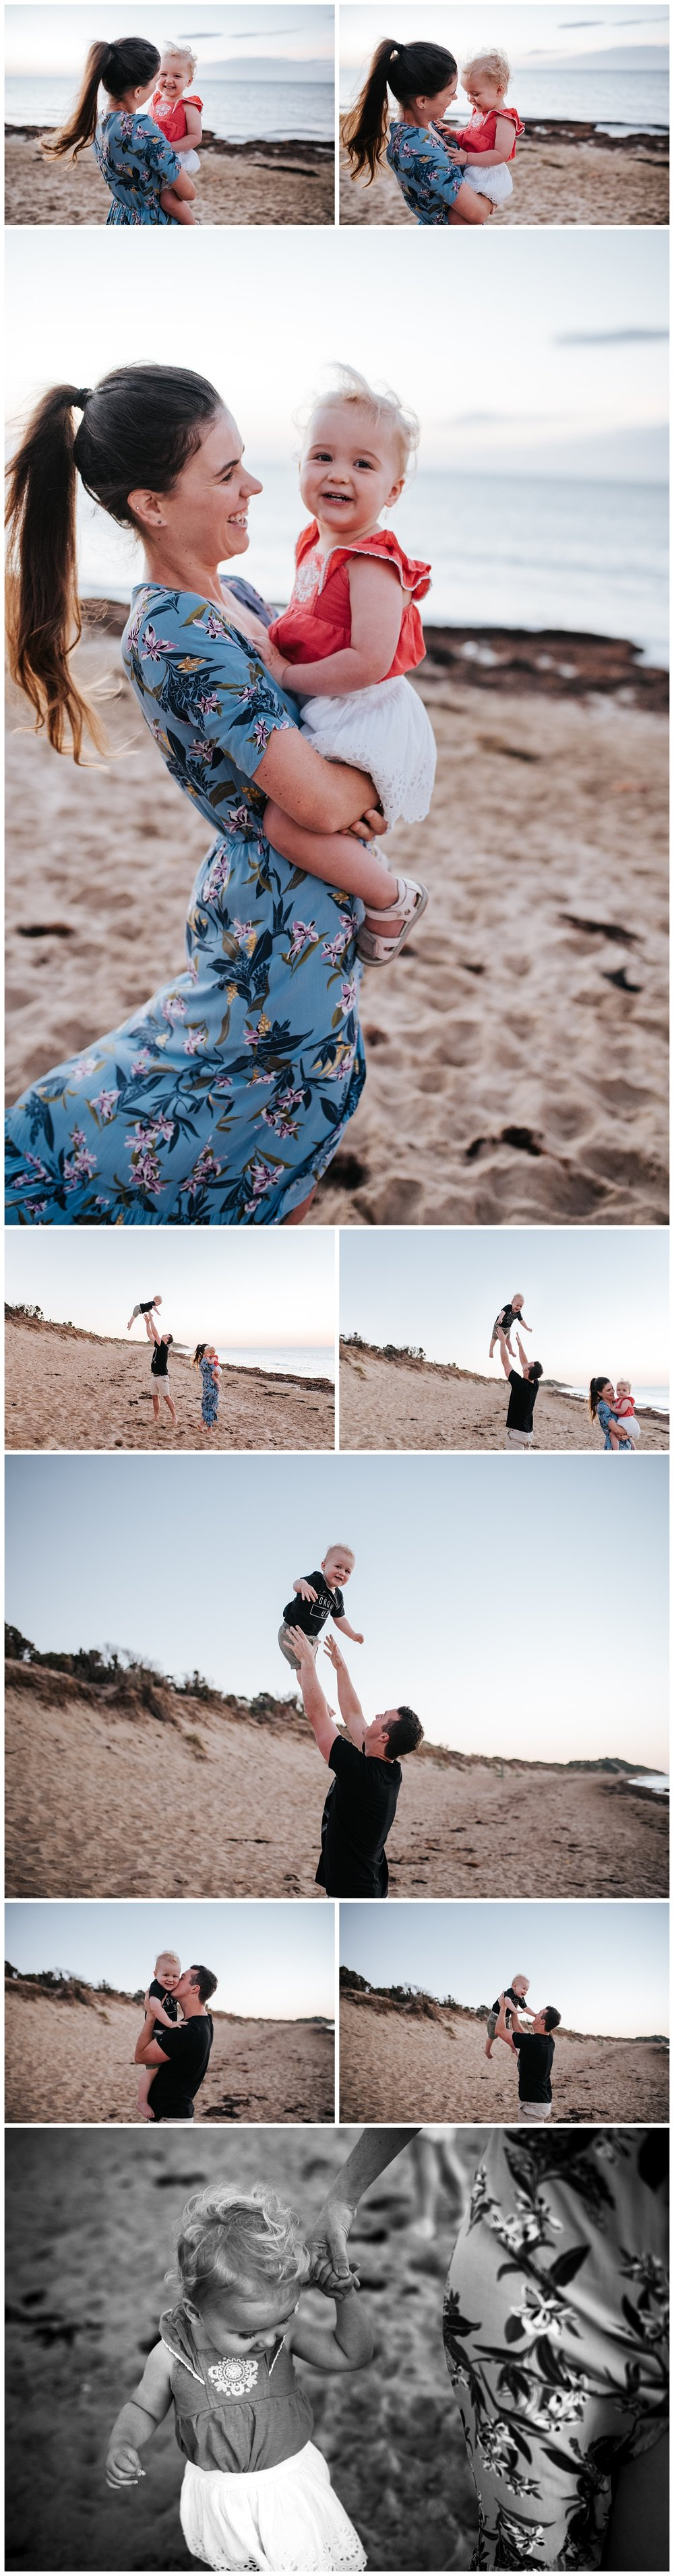 melbourne beach family photo session